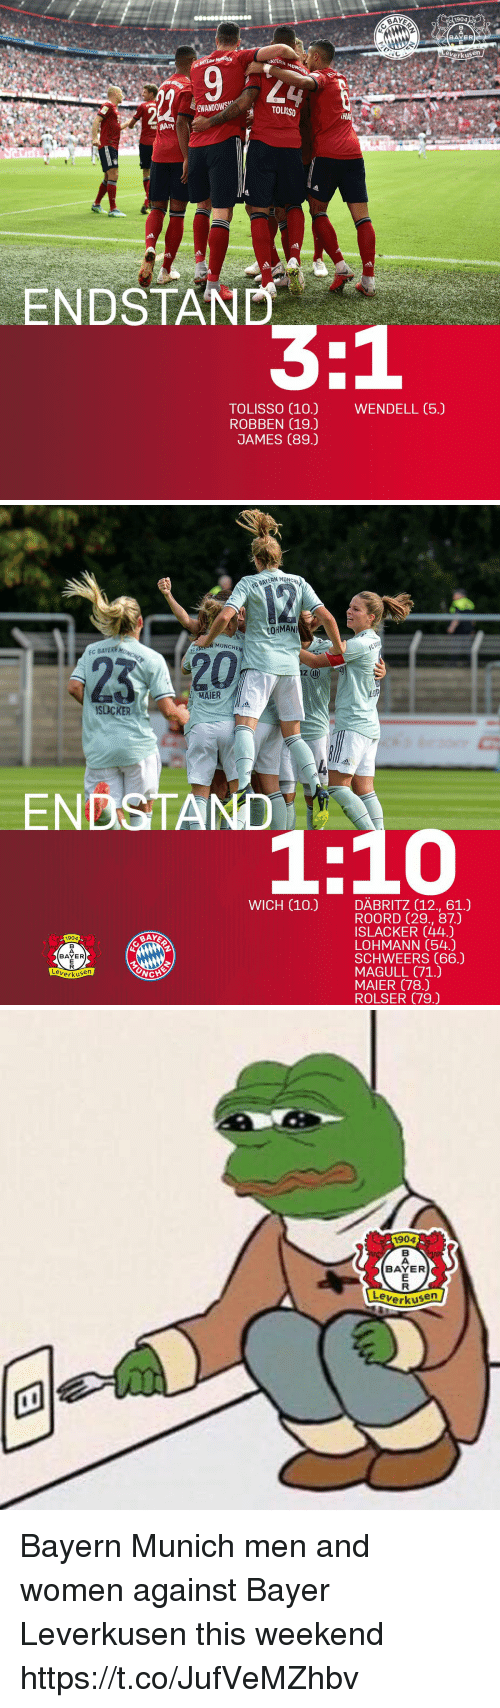 Memes, Women, and Bayer Leverkusen: BAY  1904  BAYER  erkusen  BAVERN  EWANDOWS  TOLISSO  ENDSTAND  TOLISSO (10.)  ROBBEN (19.)  JAMES (89.)  WENDELL (5.)   AYERN MUNCH  MUNCHE  C BAYERN M  12(111)  MAIER  ISLACKER  ENDSTAND  1:10  WICH (10.) DÄBRITZ (12., 61.)  ORODRD 7293, 871  ROORD (29., 87.)  ISLACKER (44.)  LOHMANN (54.)  SCHWEERS (66.)  MAGULL (71.)  MAIER (78.)  ROLSER (79.)  904  BAY  BAYER  erkusen   1904  BAYER  en  Leverkus Bayern Munich men and women against Bayer Leverkusen this weekend https://t.co/JufVeMZhbv